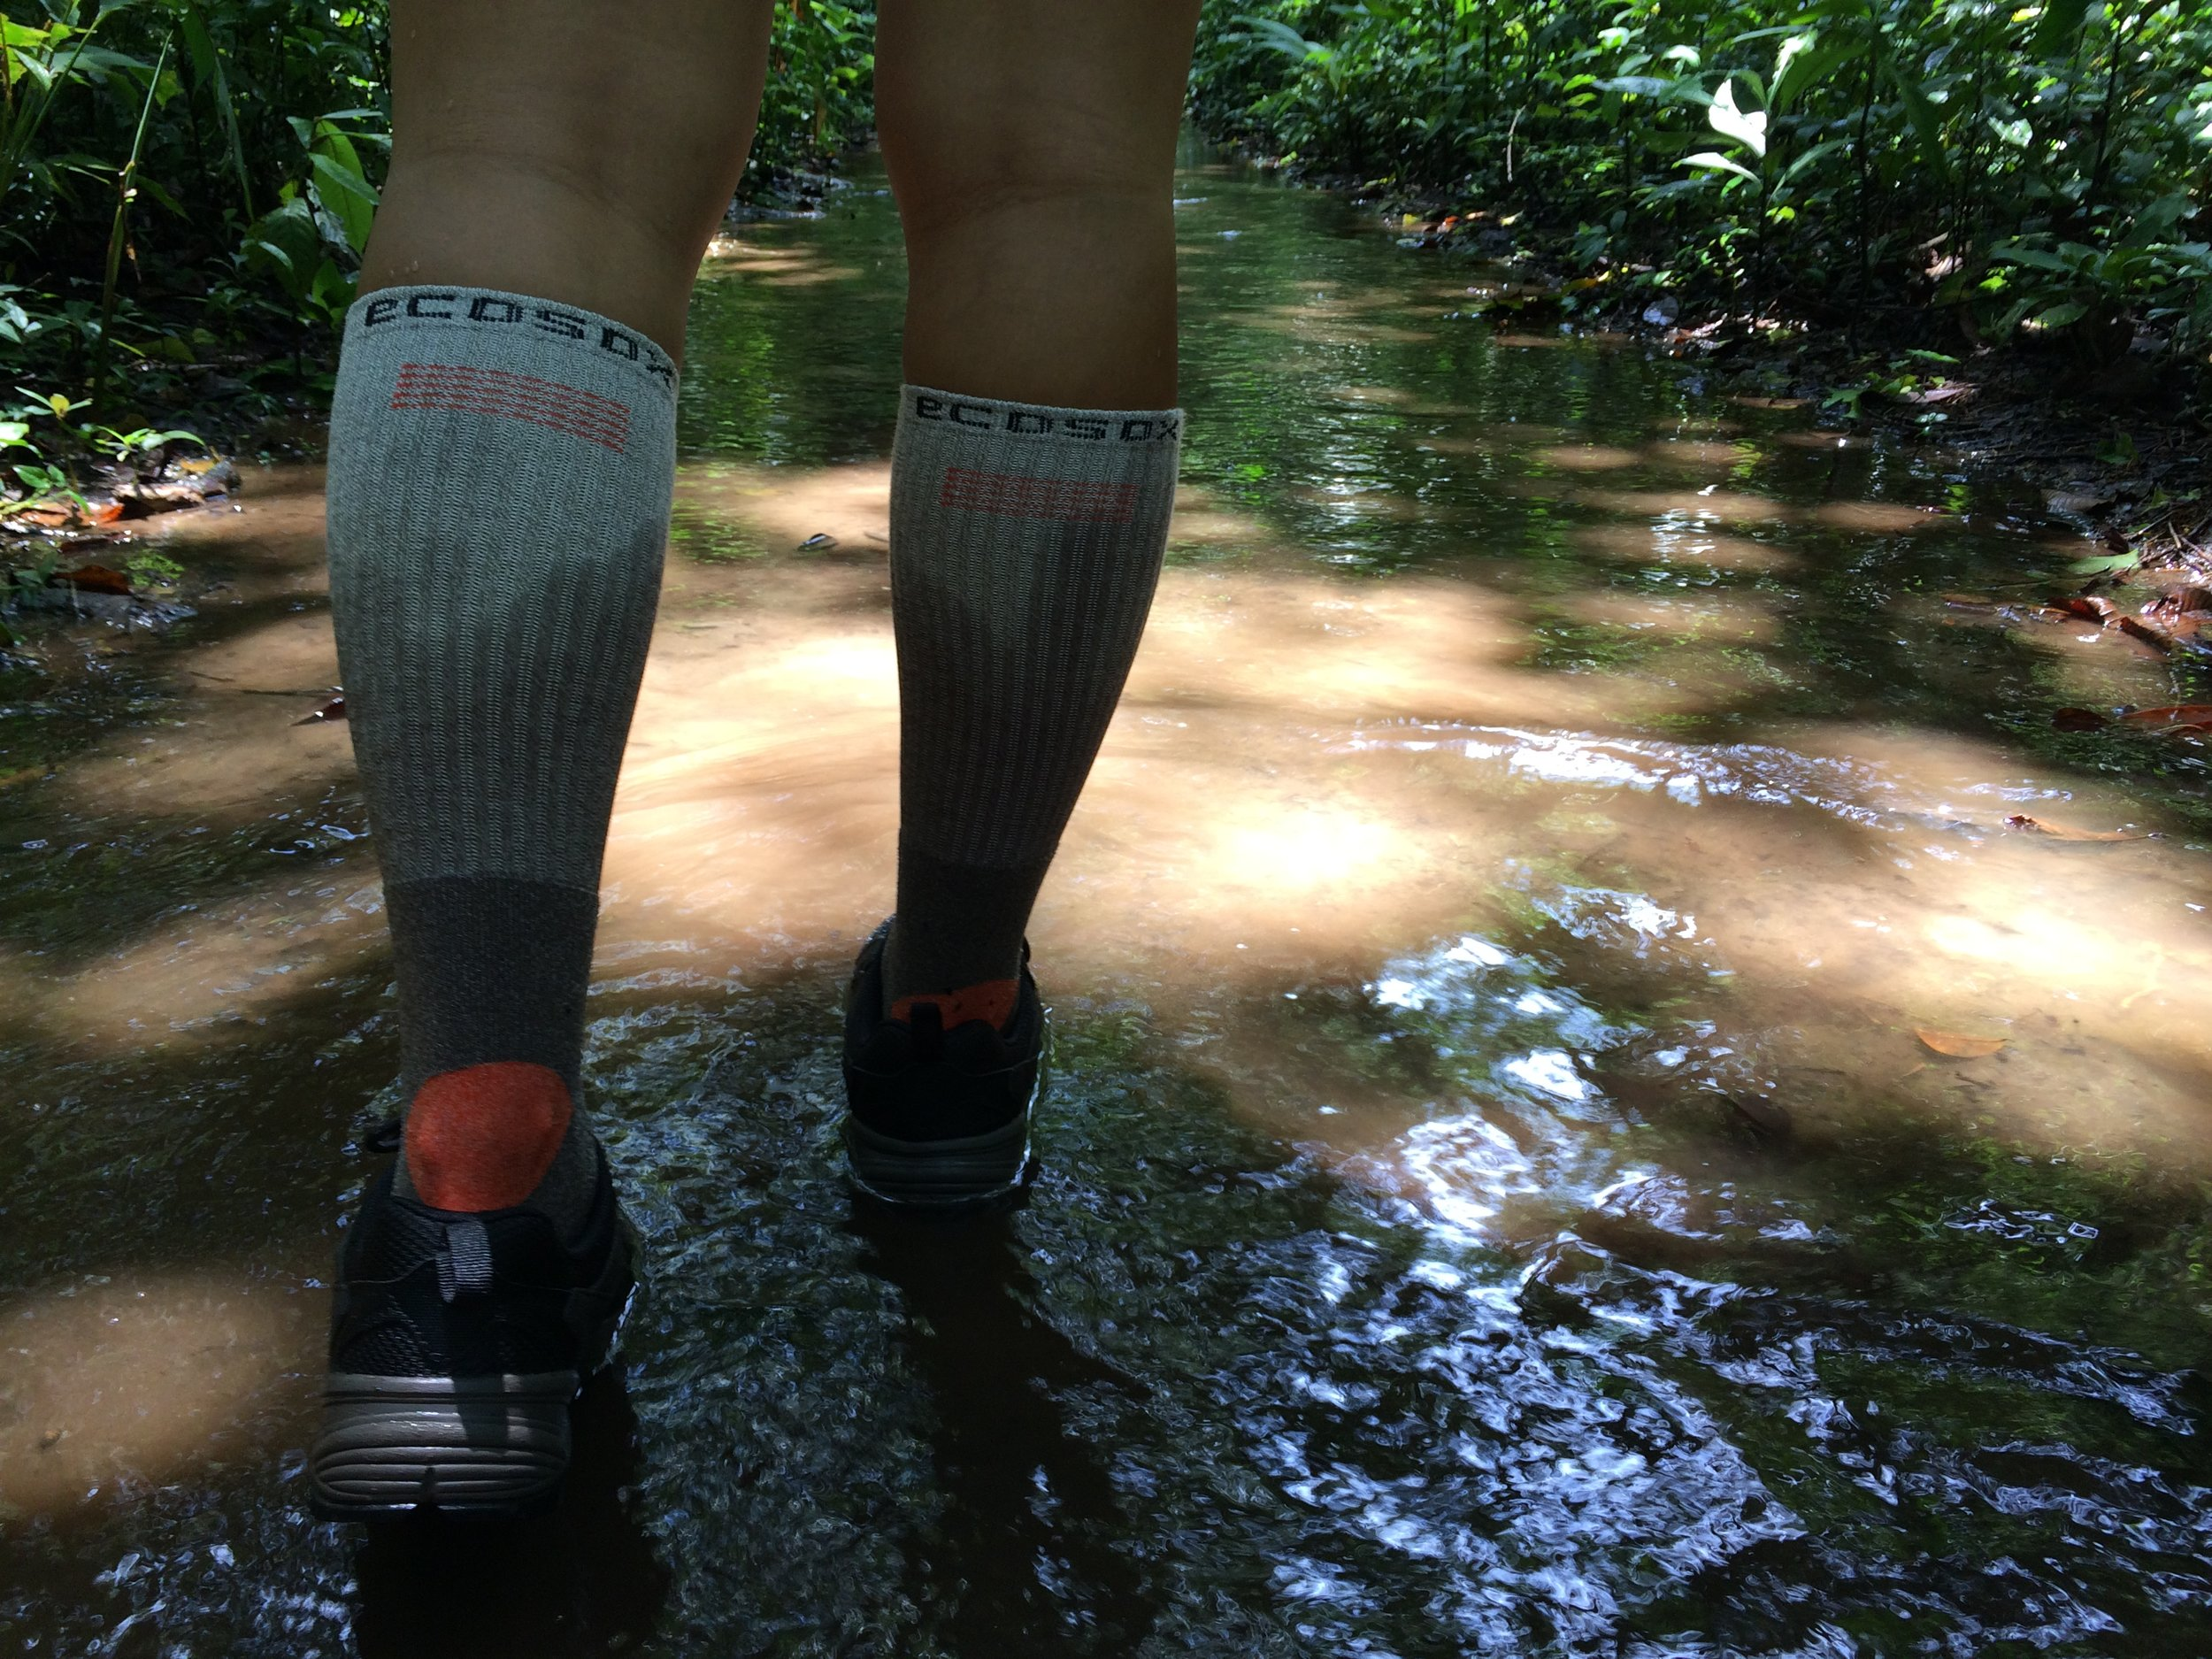 Because it is a tropical country, conditions in Costa Rica will challenge most types of gear.